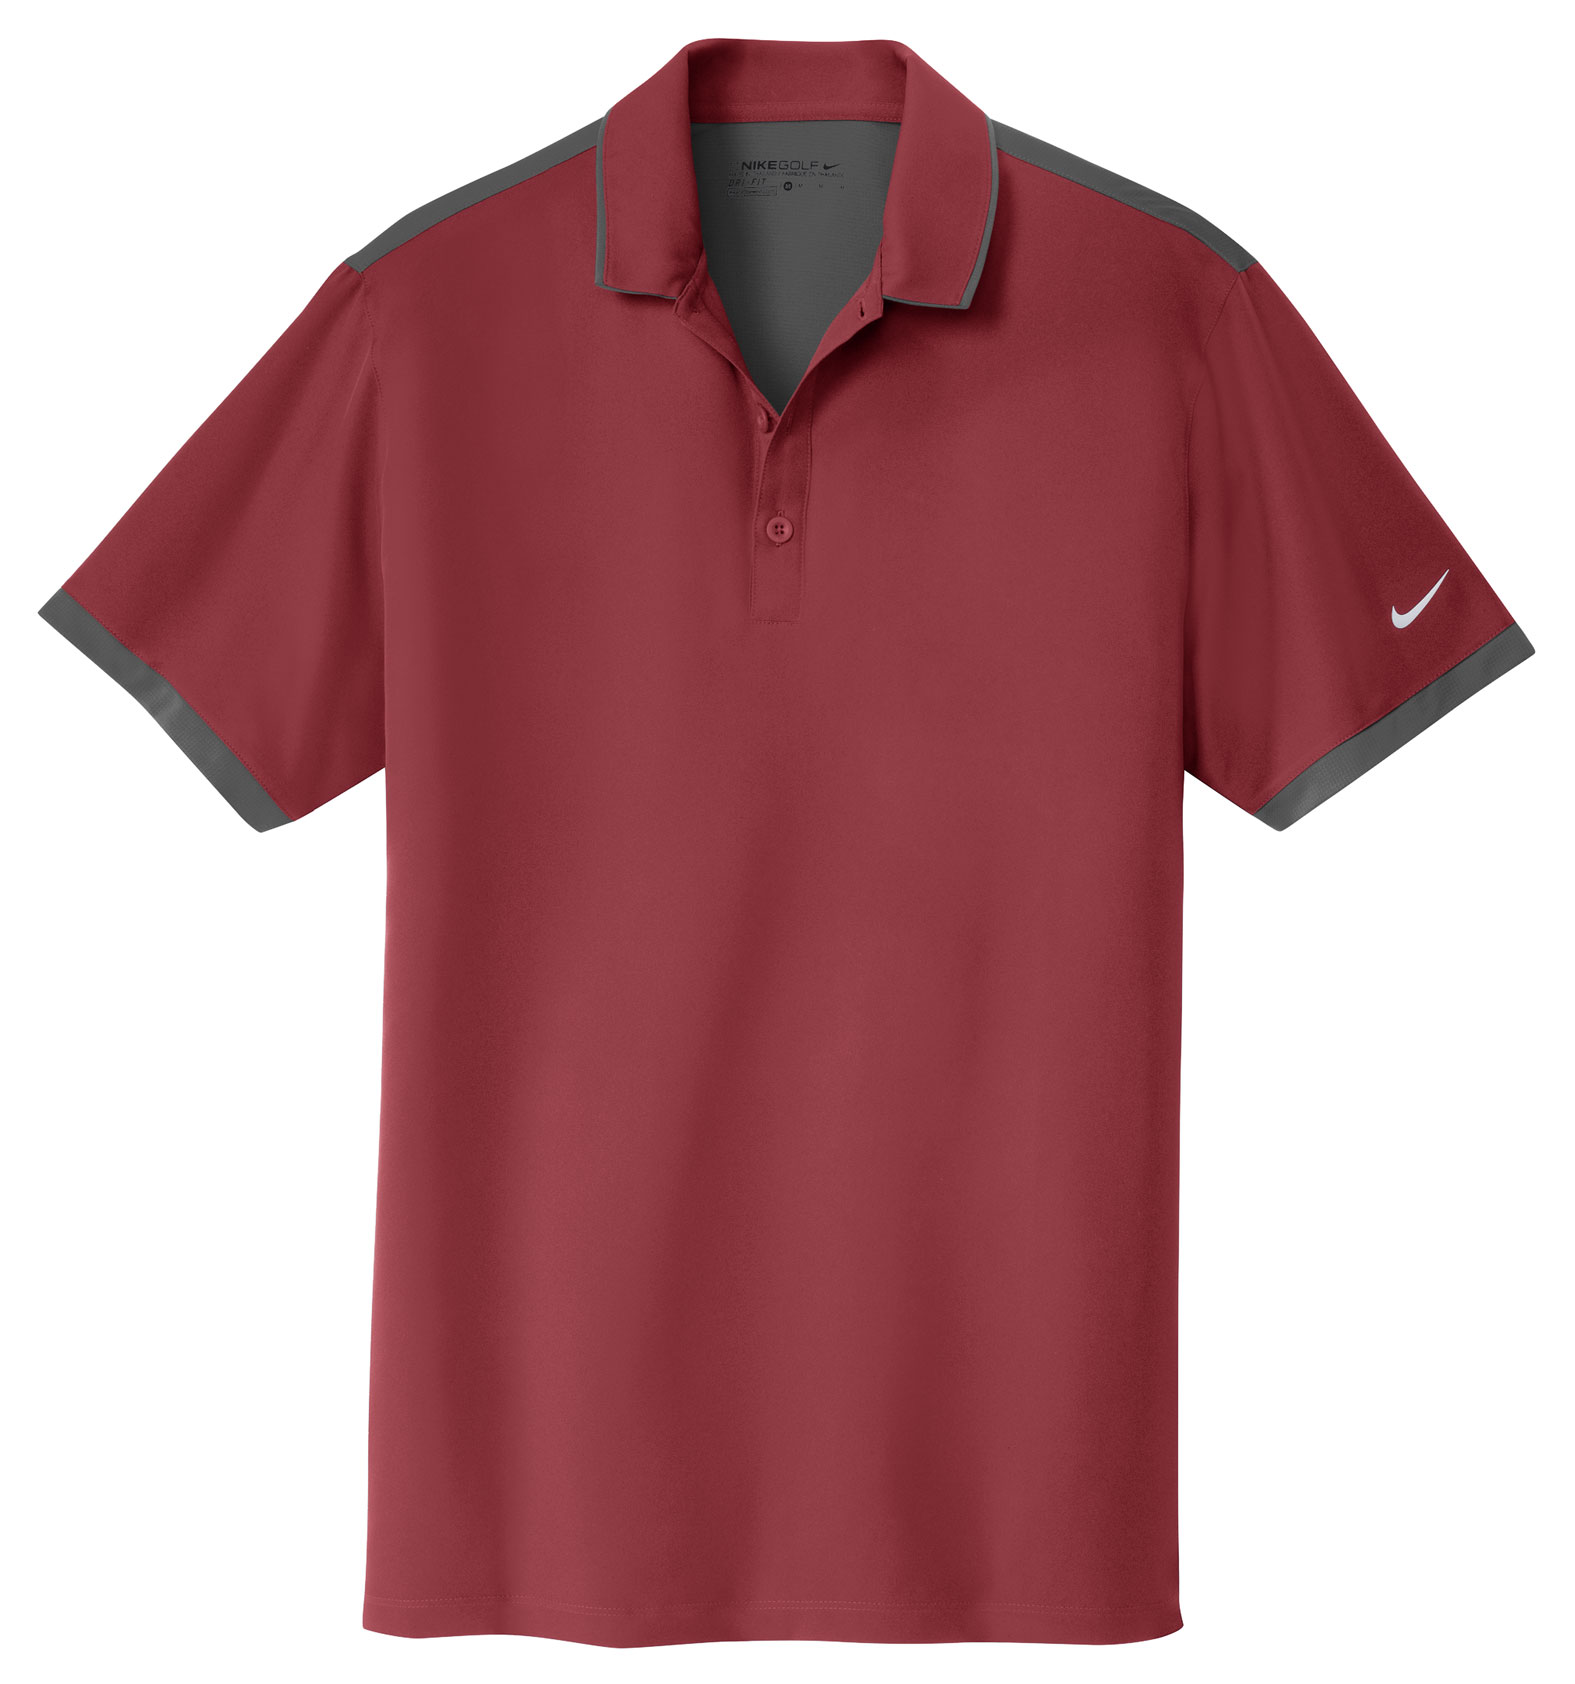 Nike Golf Dri-FIT Mens Stretch Woven Polo